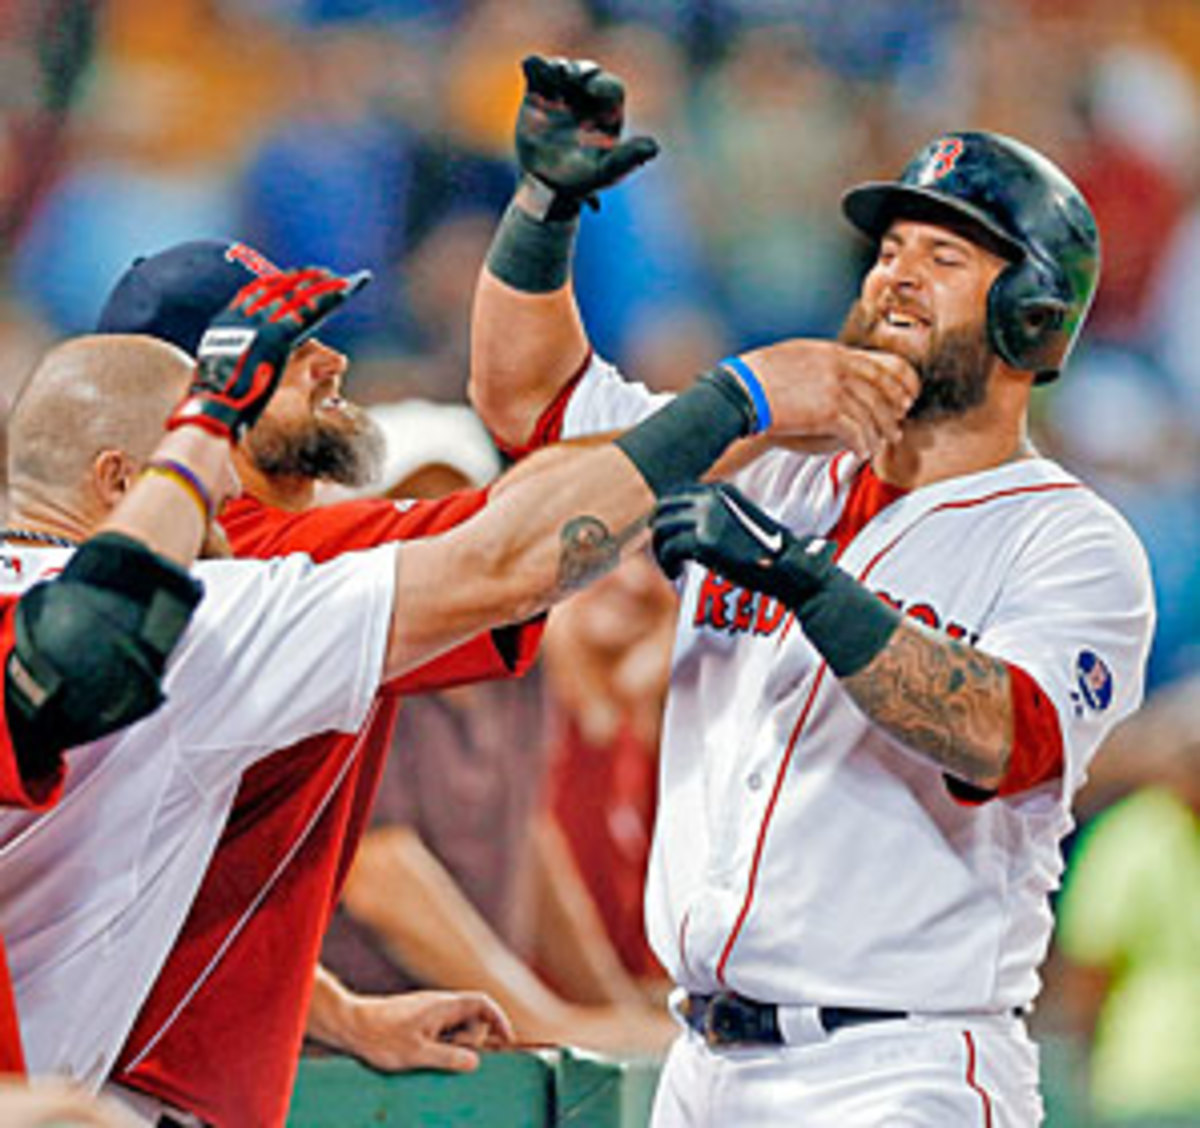 No Napoli home run is complete without a slew of celebratory tugs in the dugout.